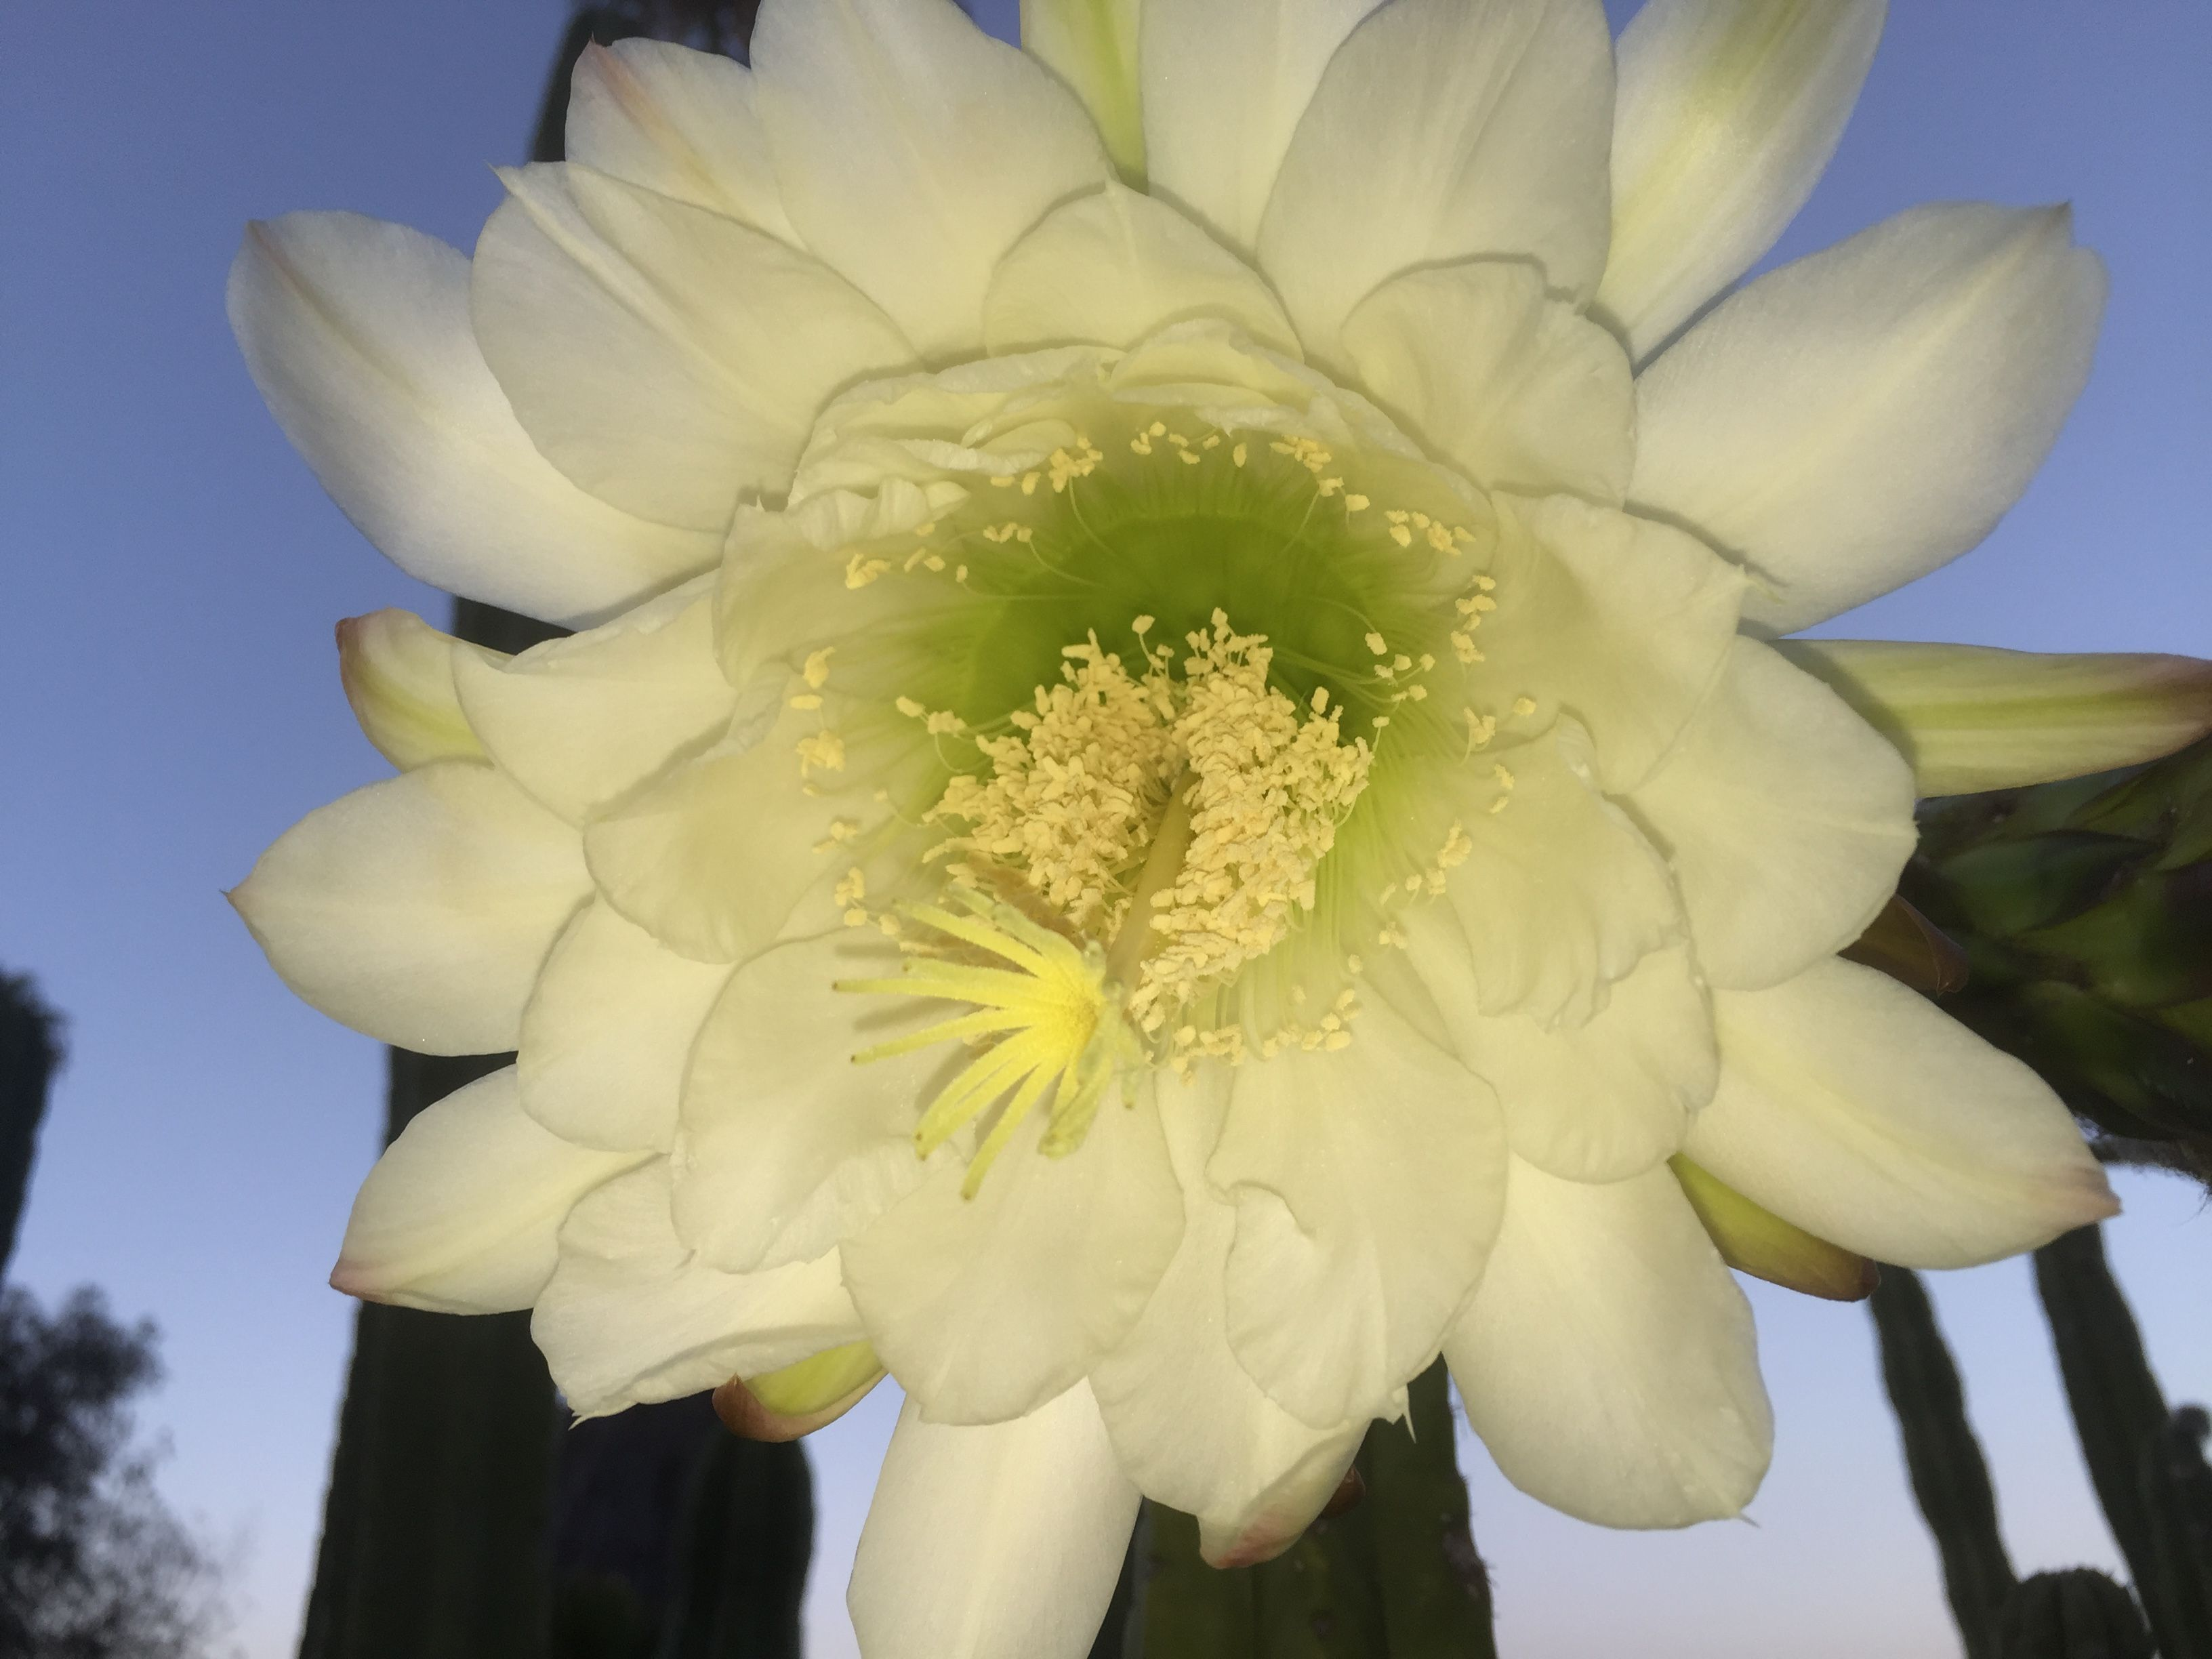 Cactus flower, blooms every few years